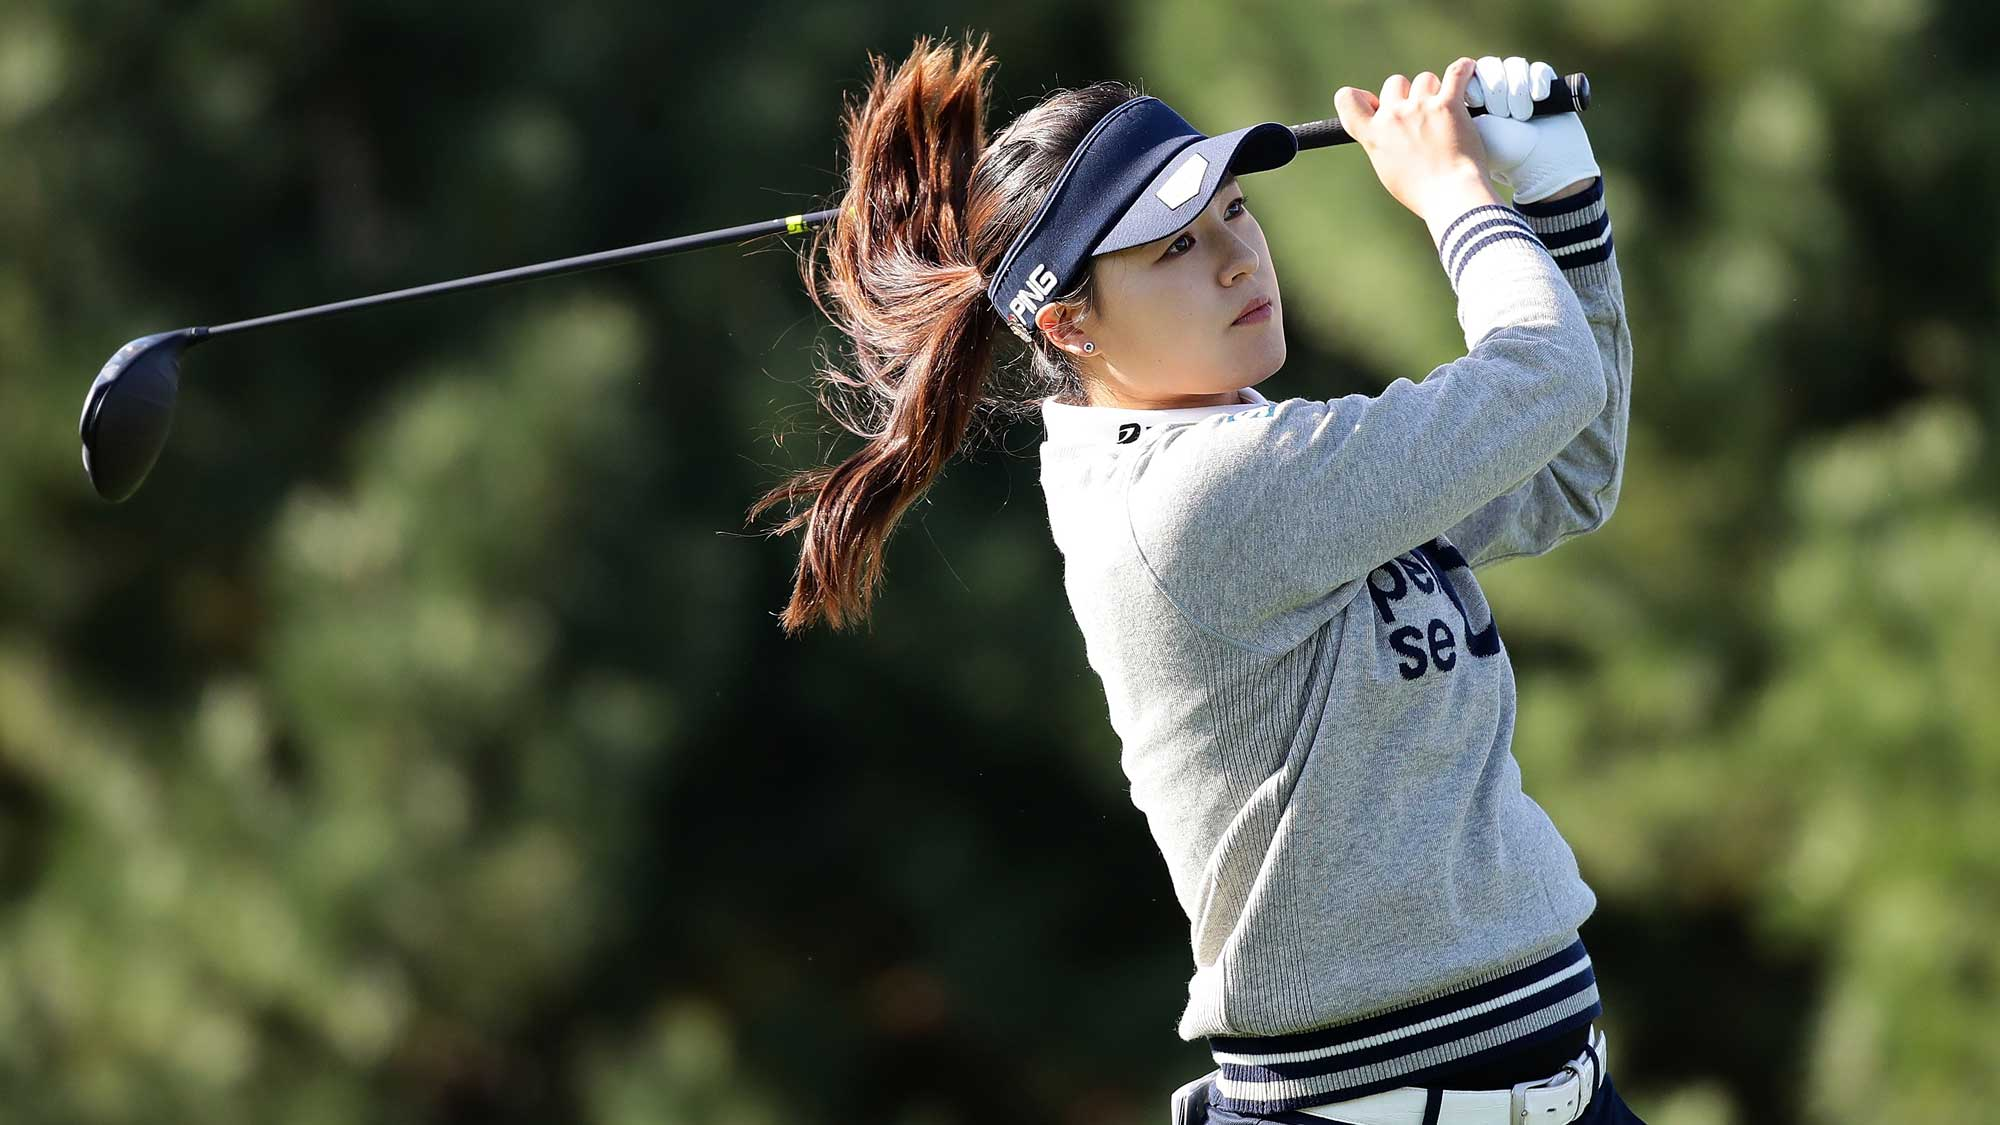 In-Gee Chun of South Korea plays a tee shot on the 2nd hole during the second round of the LPGA KEB Hana Bank Championship